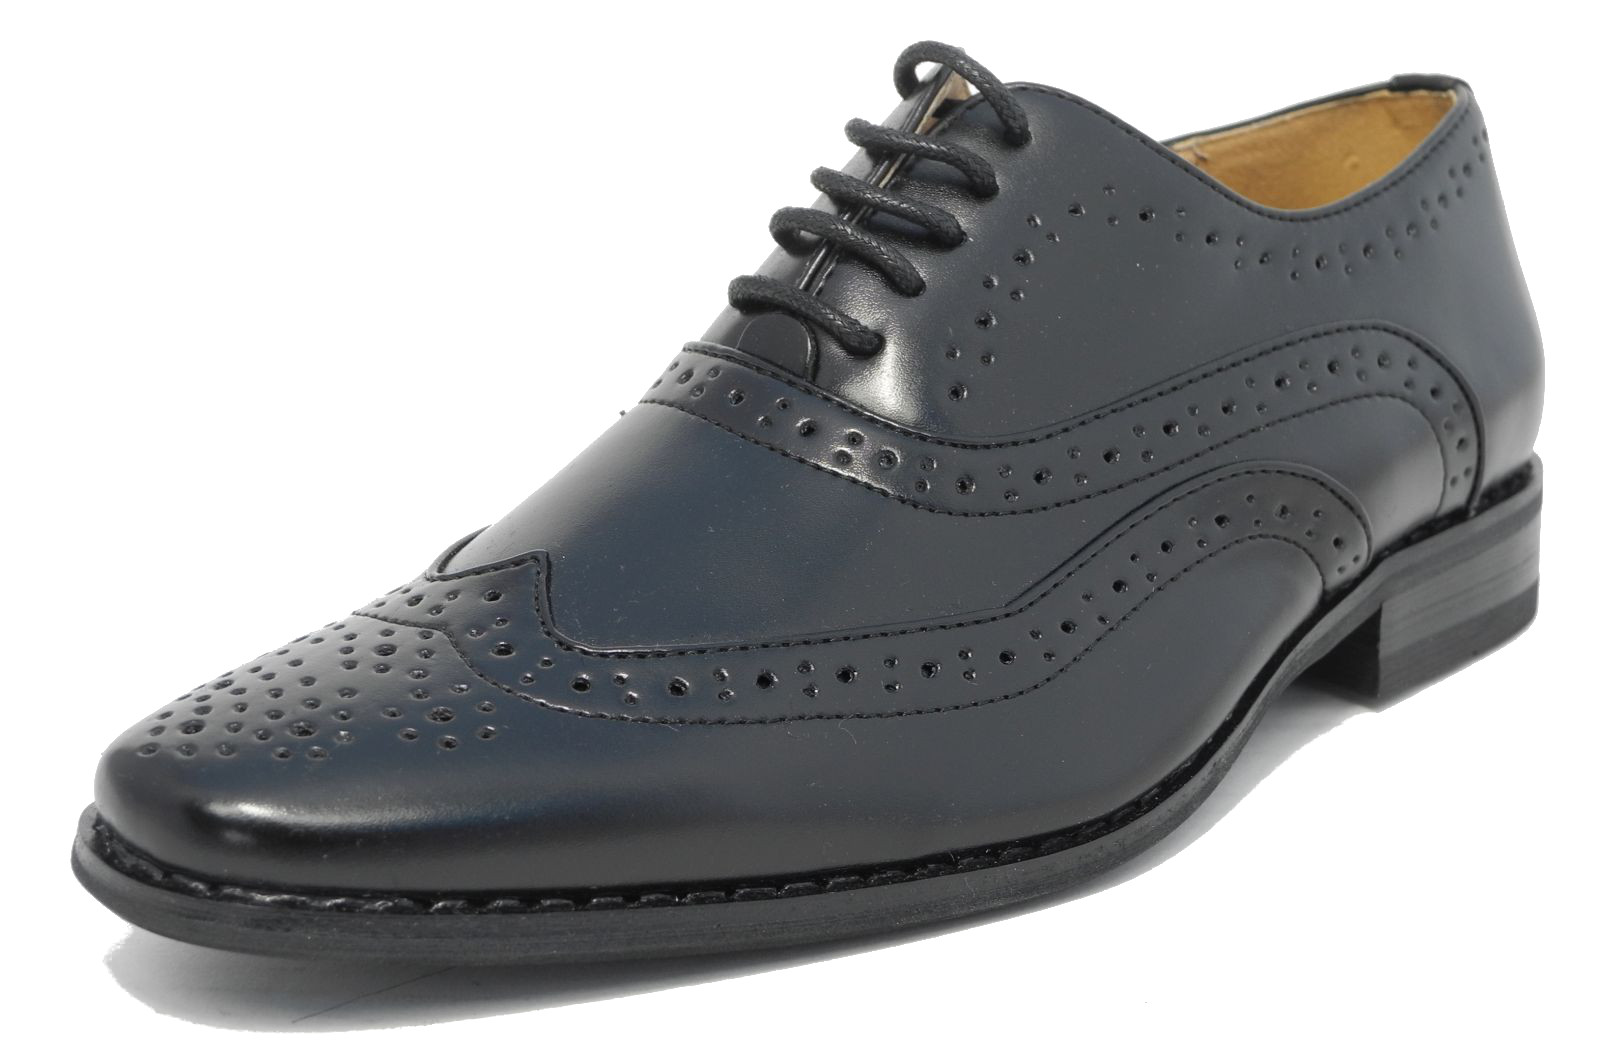 Boys Navy Tan Leather Lined Lace Up Smart Brogues Gatsby Two Tone Shoes 10-5.5